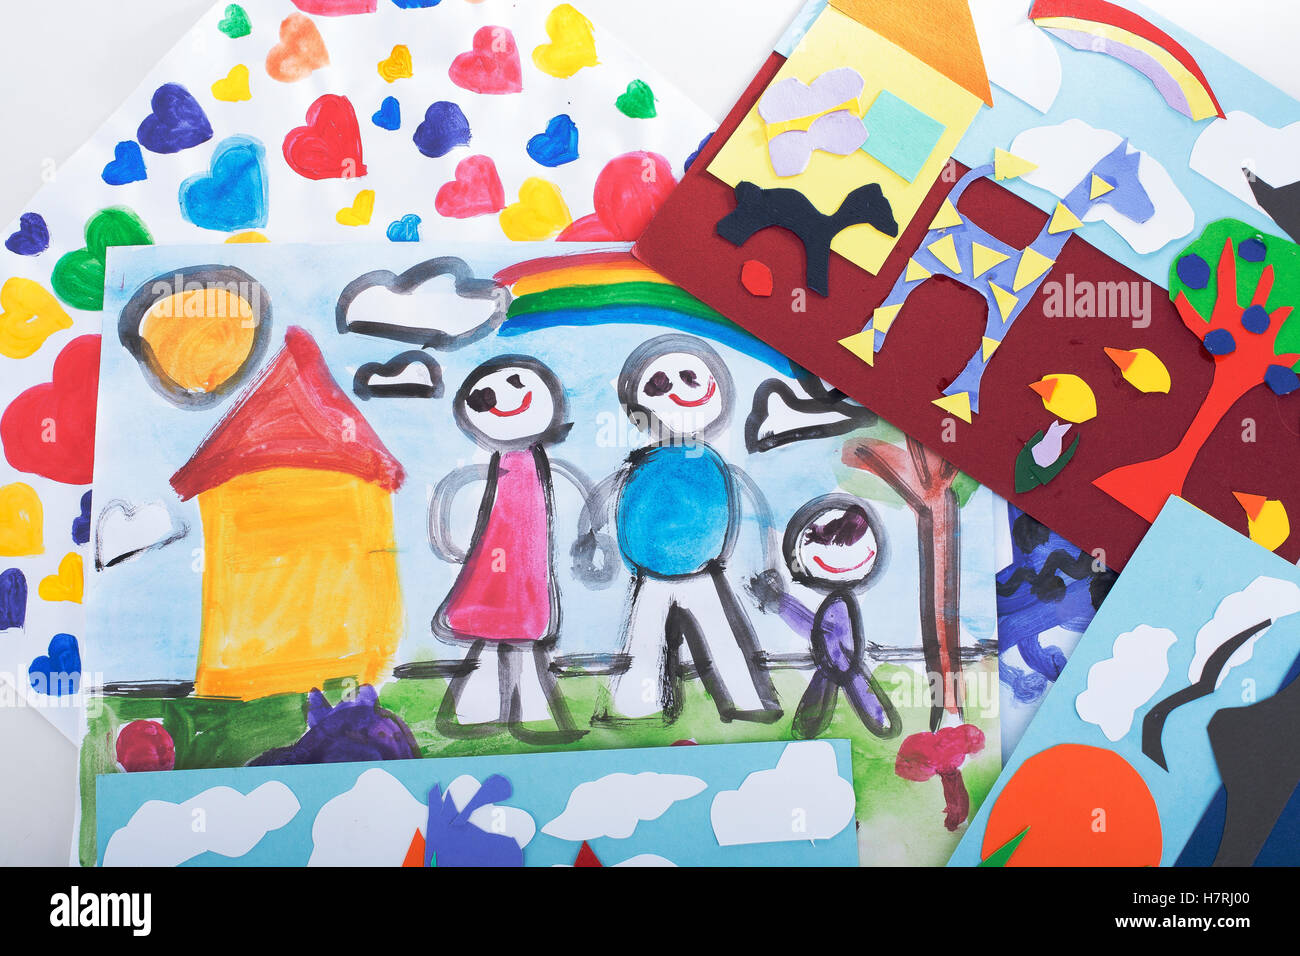 children painting drawing and collage with colorful paper beautiful child drawings rainbow fantasy animal draws kids art - Children Drawing Pictures For Painting